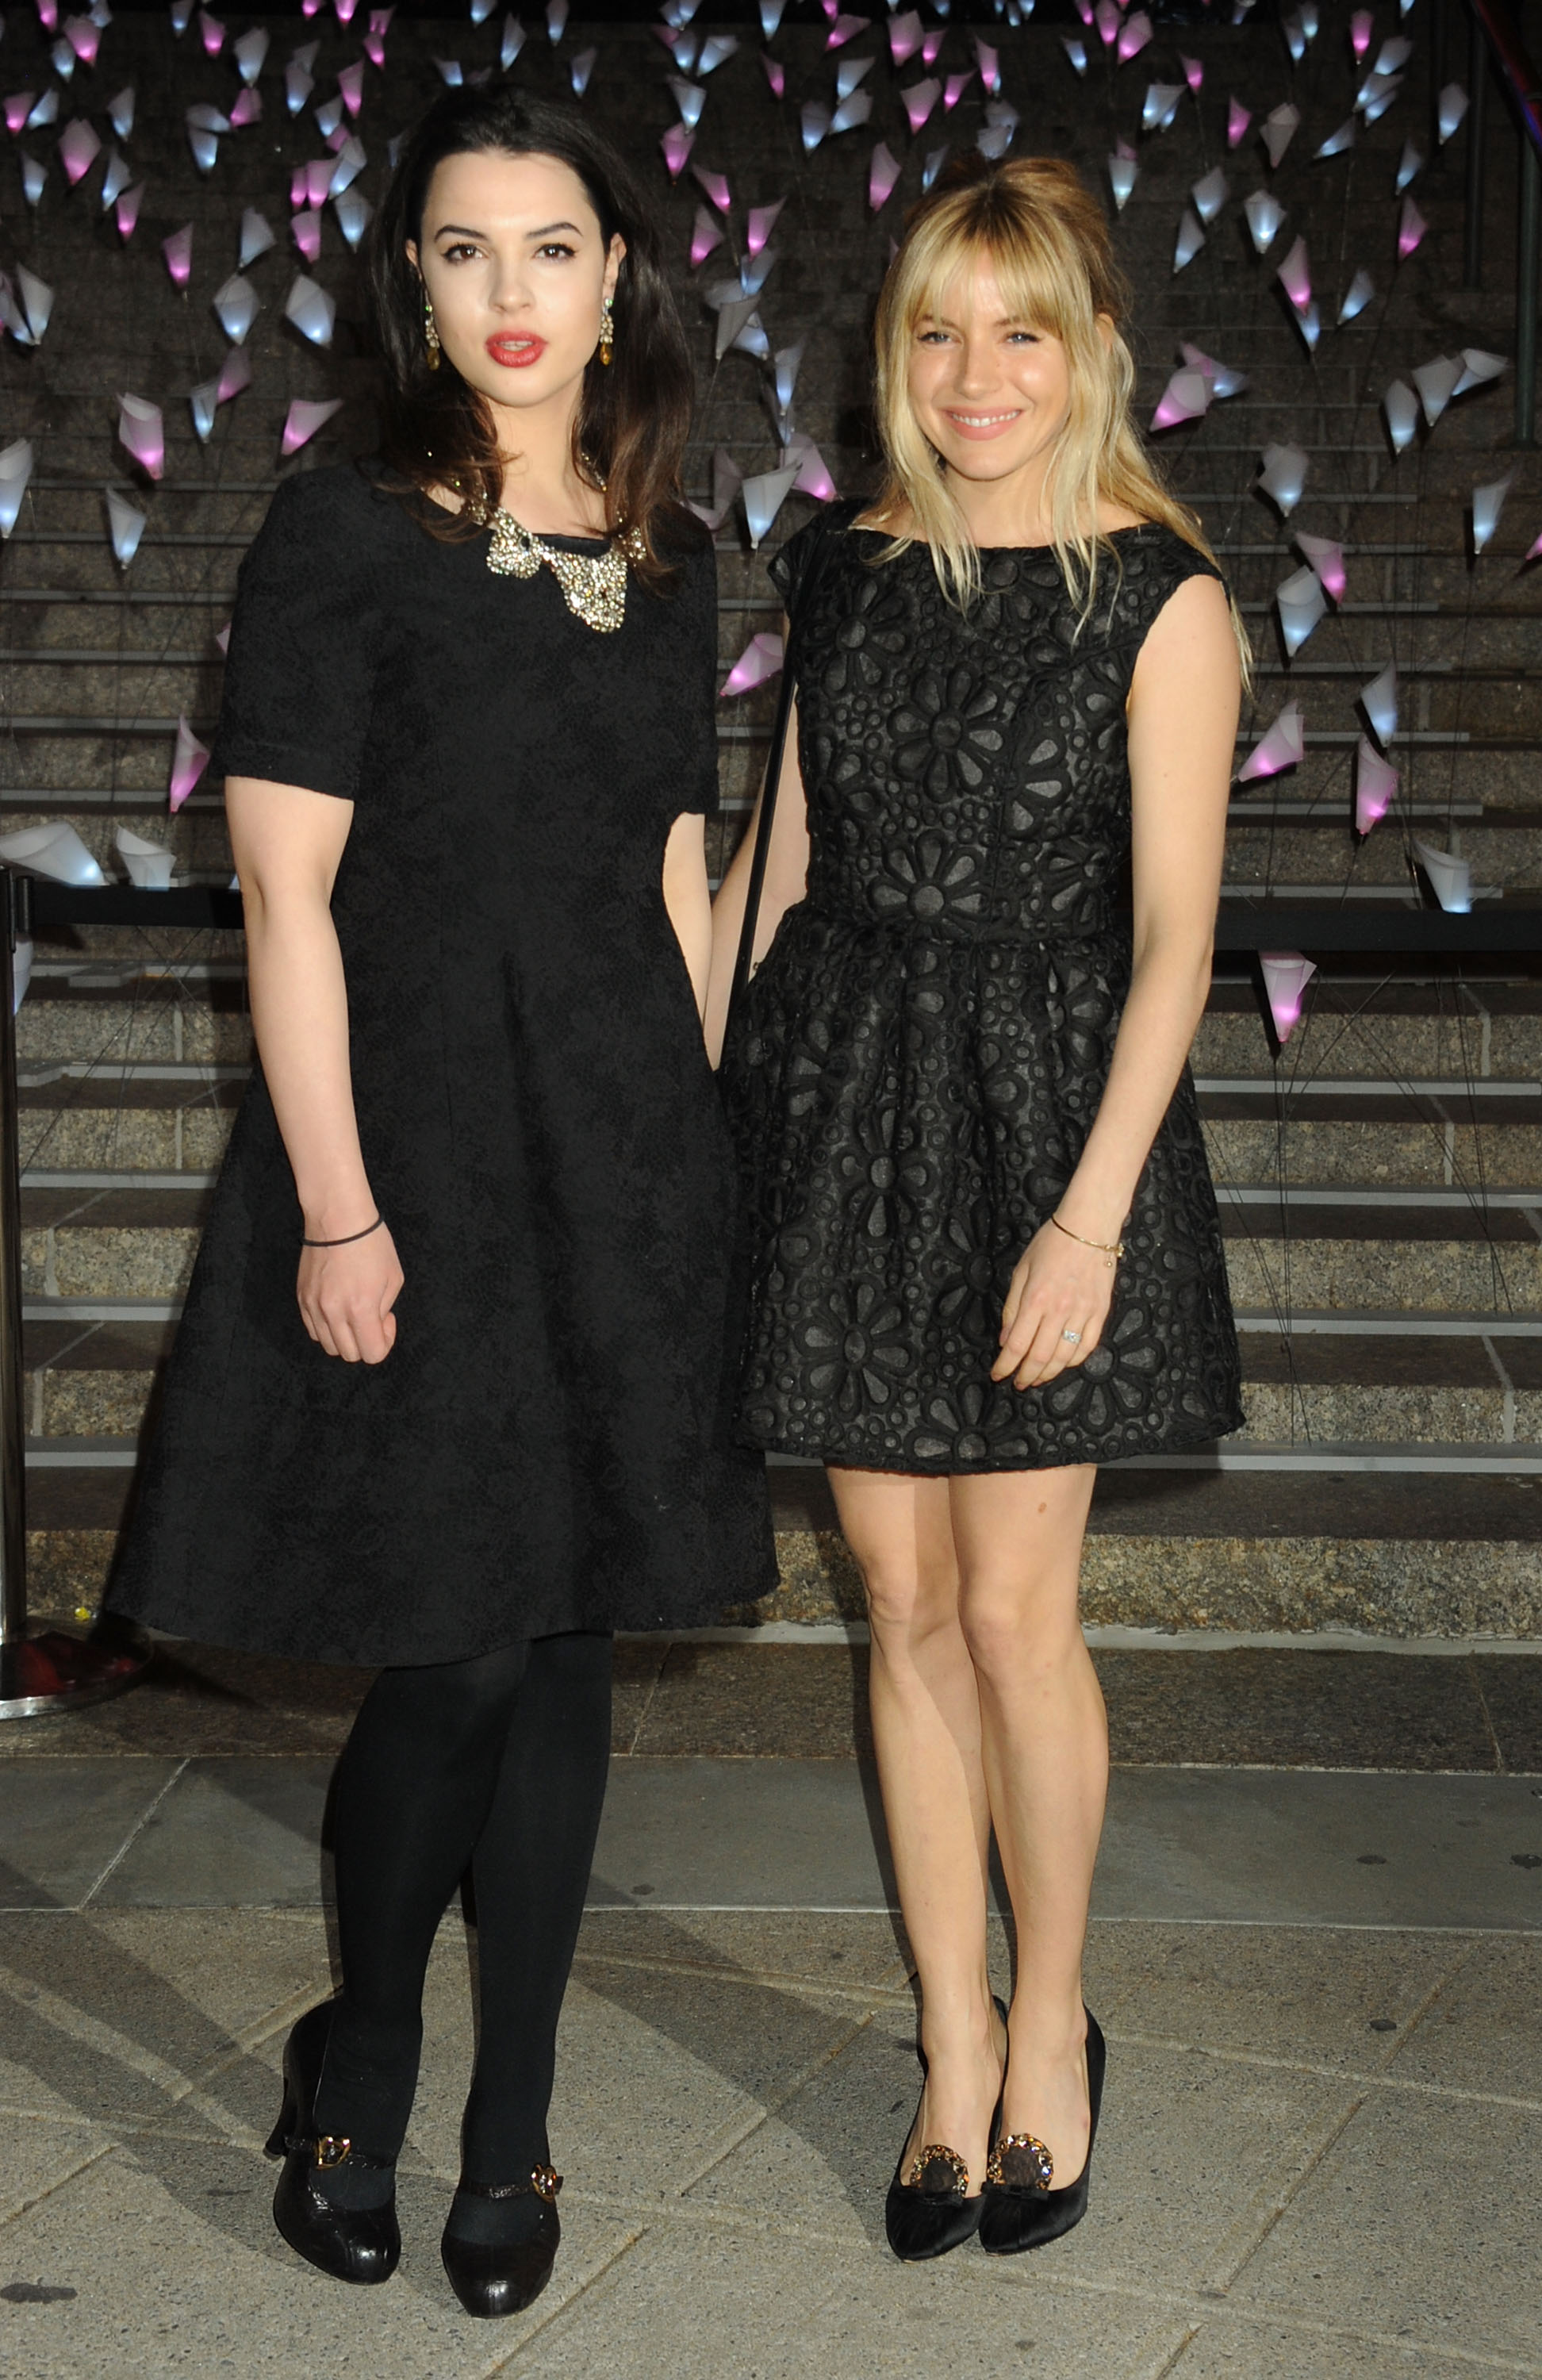 Sienna Miller held hands with Tom Sturridge's sister, Matilda Sturridge, at the Vanity Fair bash.